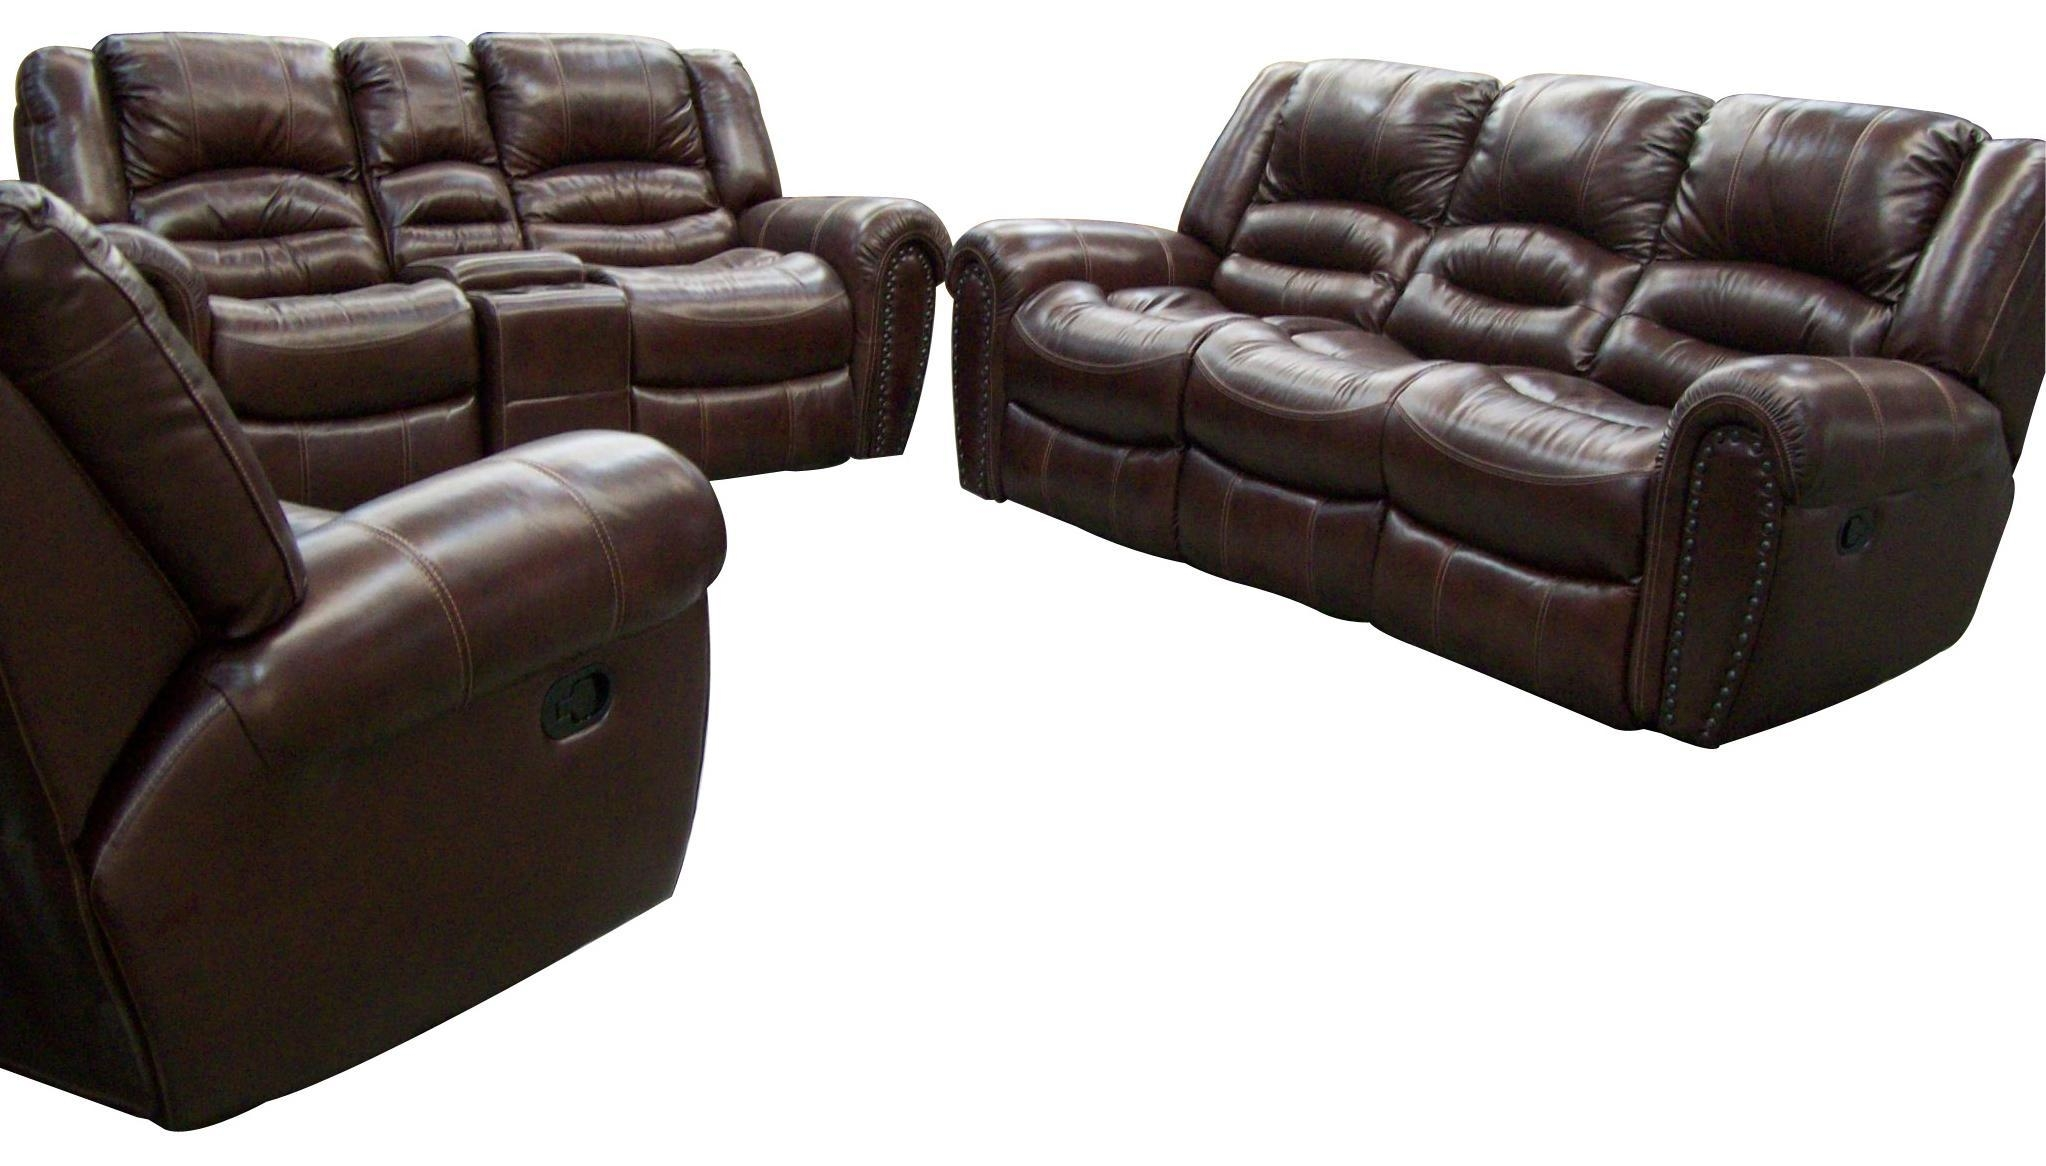 Cheers Sofa – Gallery Image Seniorhomes With Cheers Recliner Sofas (Image 1 of 8)